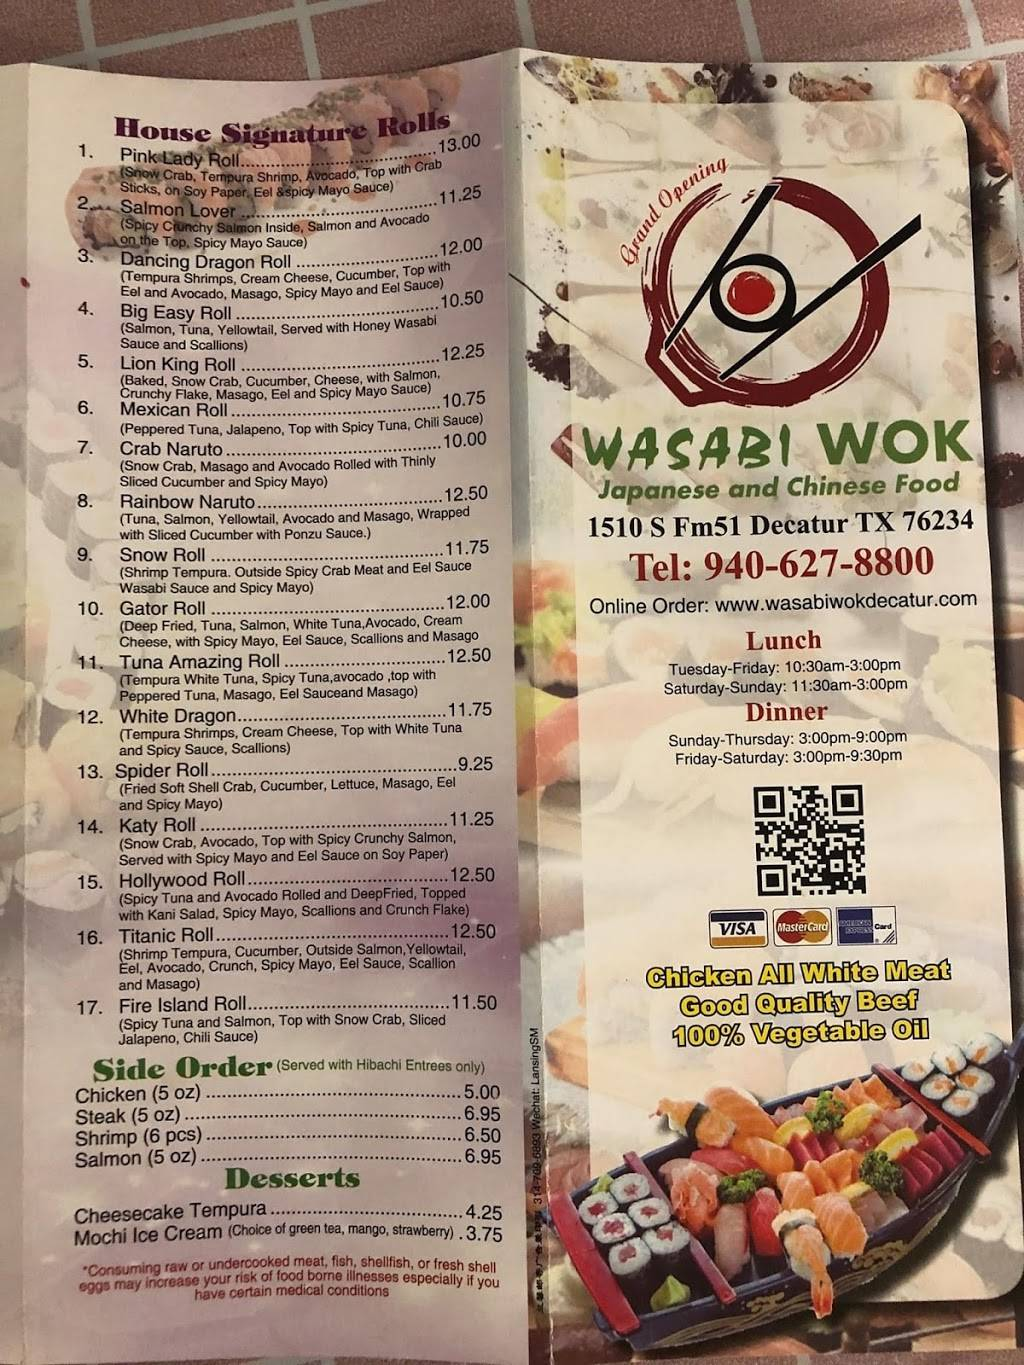 Wasabi Wok Chinese and Japanese restaurant | restaurant | 1510 S, FM 51, Decatur, TX 76234, USA | 9406278800 OR +1 940-627-8800